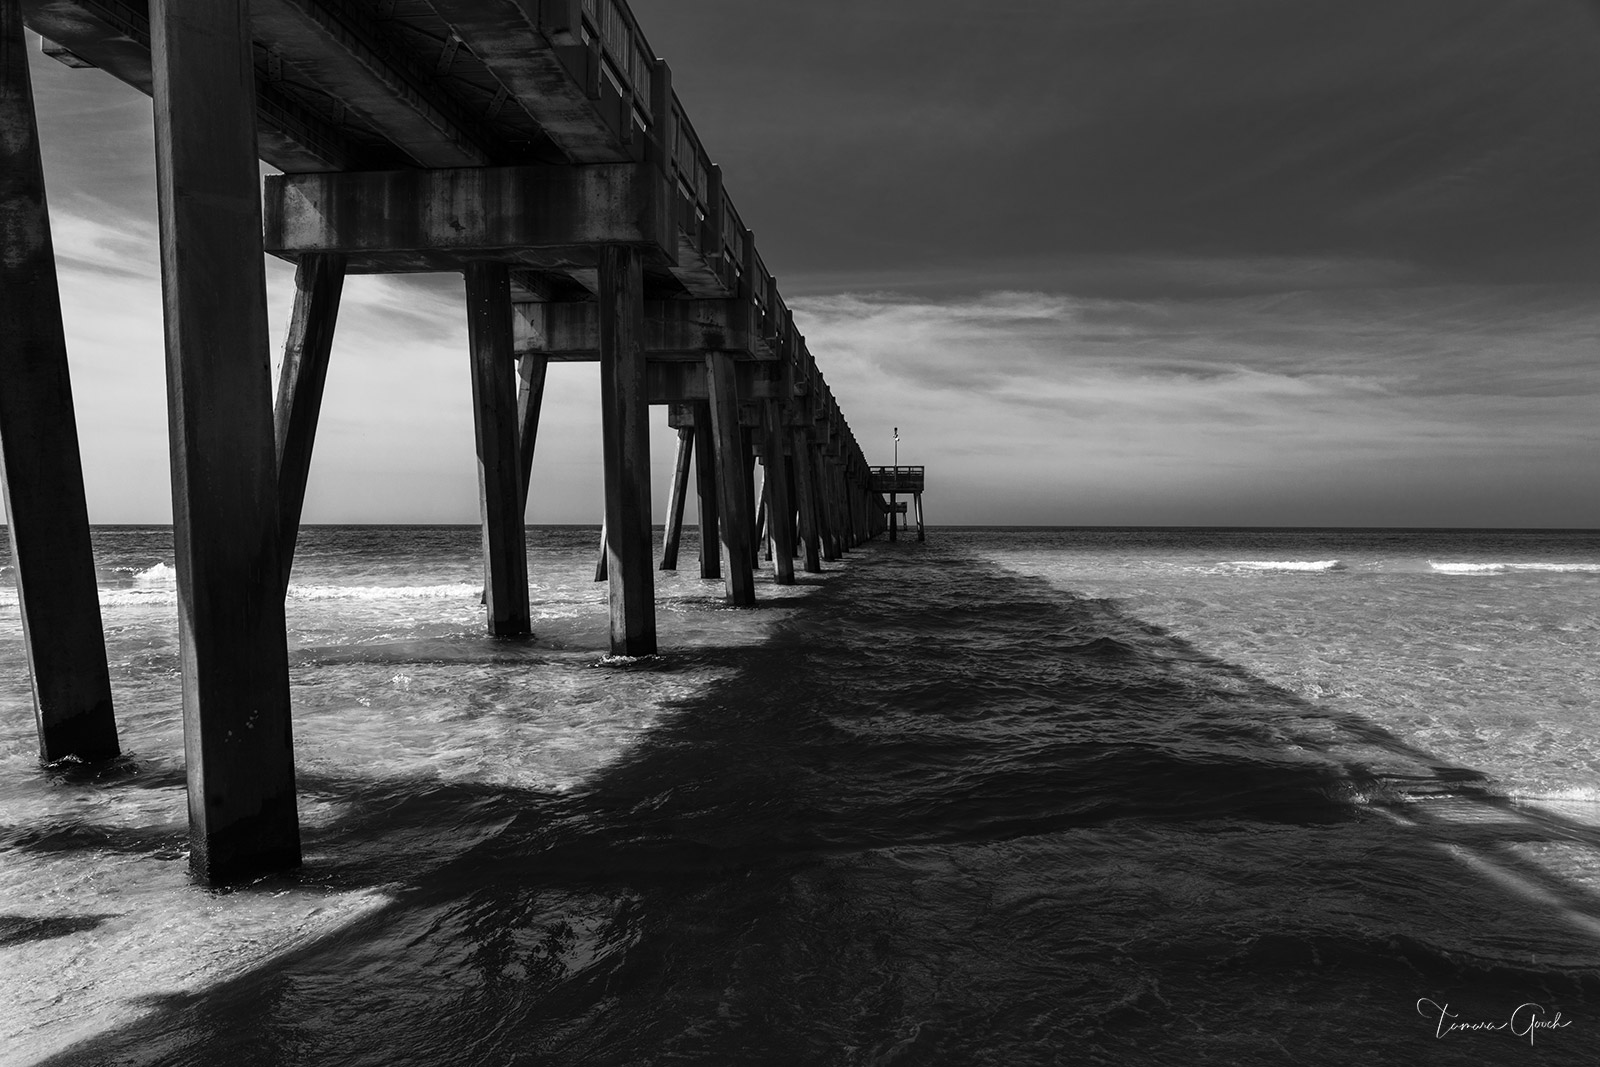 Limited Edition Print of 50 This black and white image of the Destin Pier in Florida has quickly become a favorite pier photo...